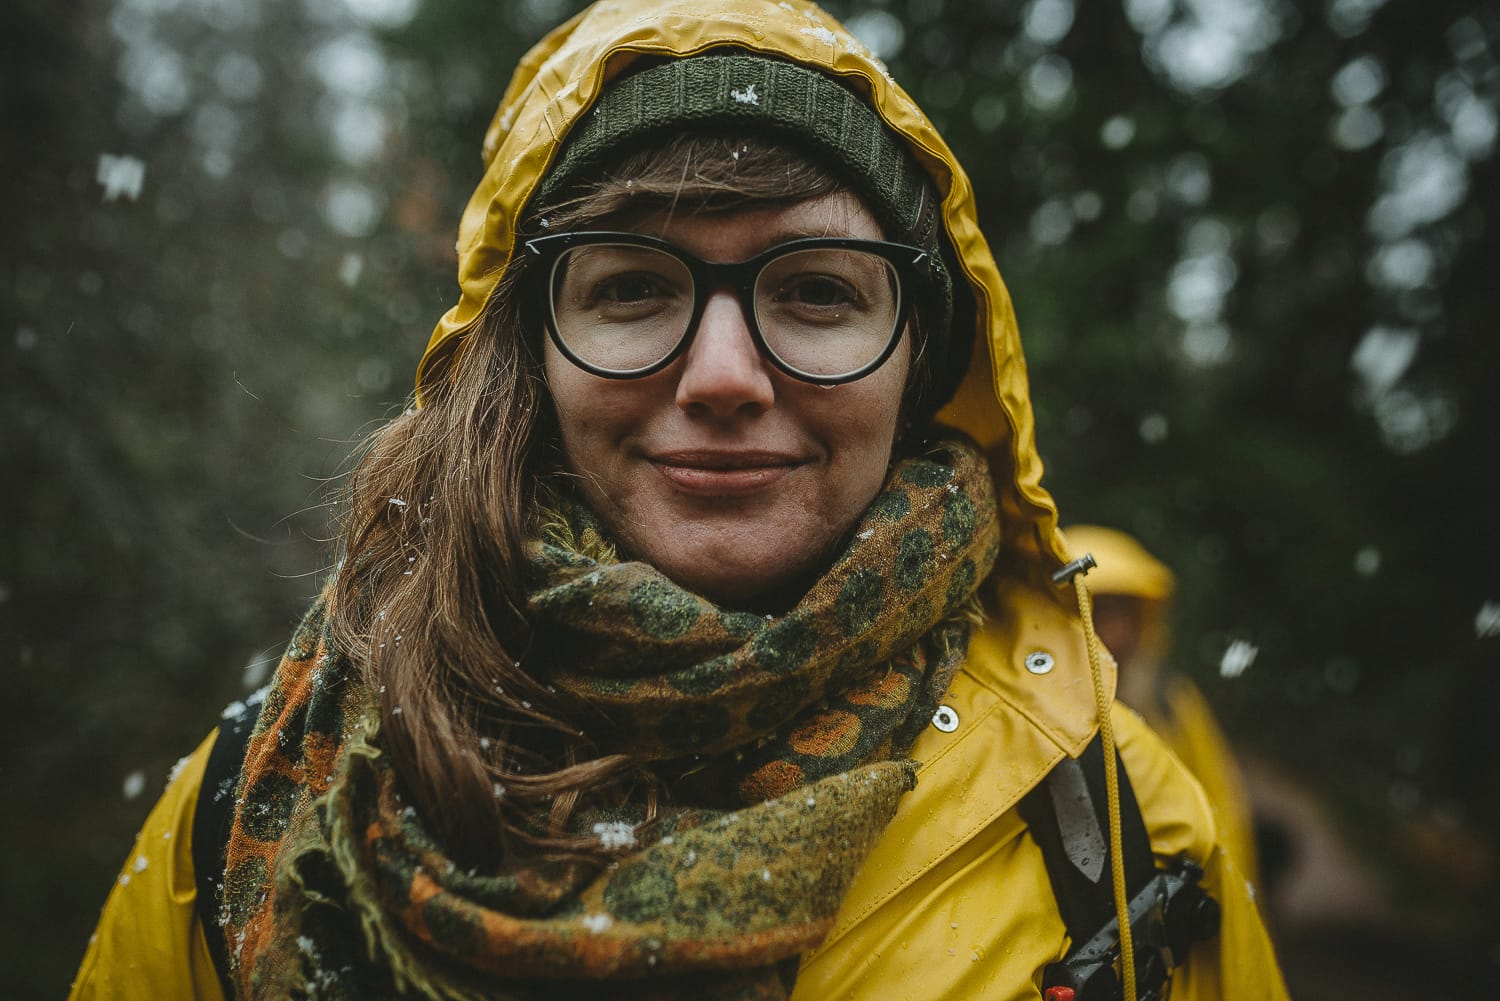 portrait of a female wearing a raincoat as it snows